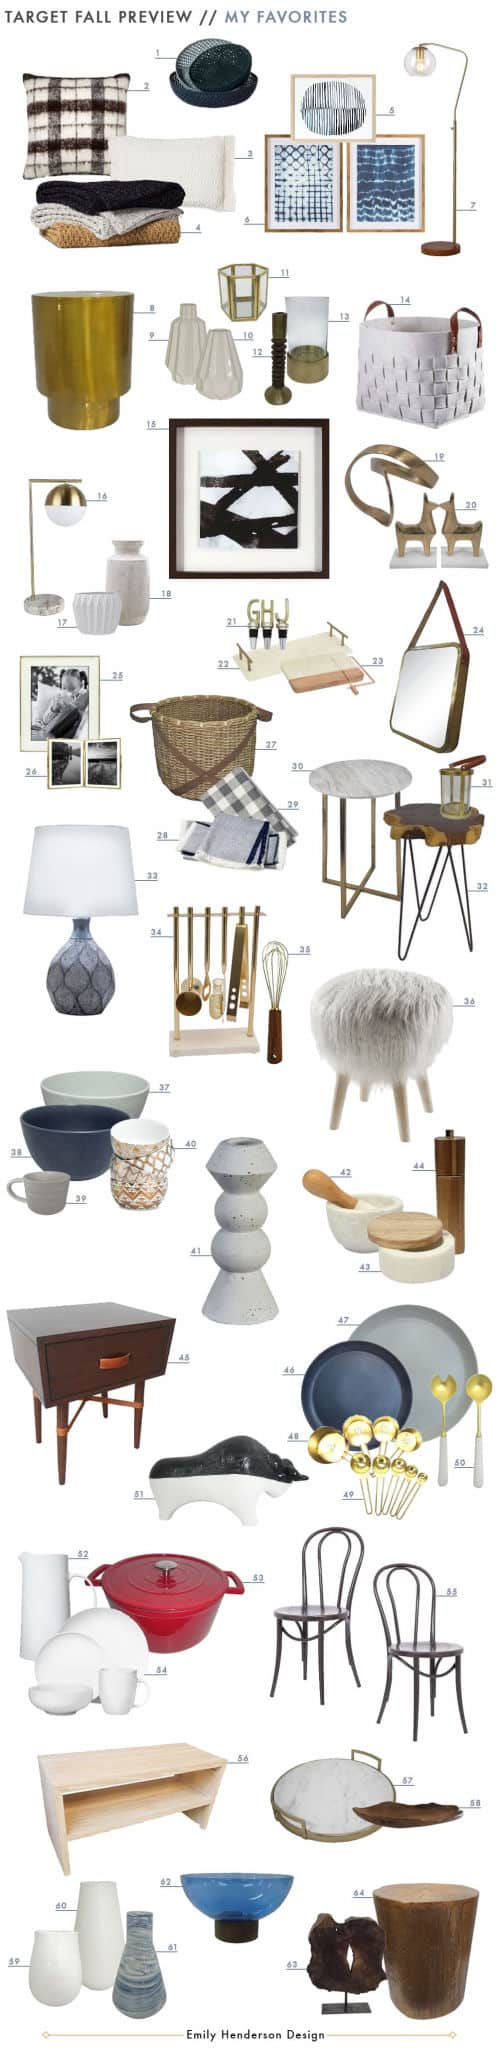 fall-target-preview-emilys-favorites-get-the-look-threshold-nate-berkus-home-decor